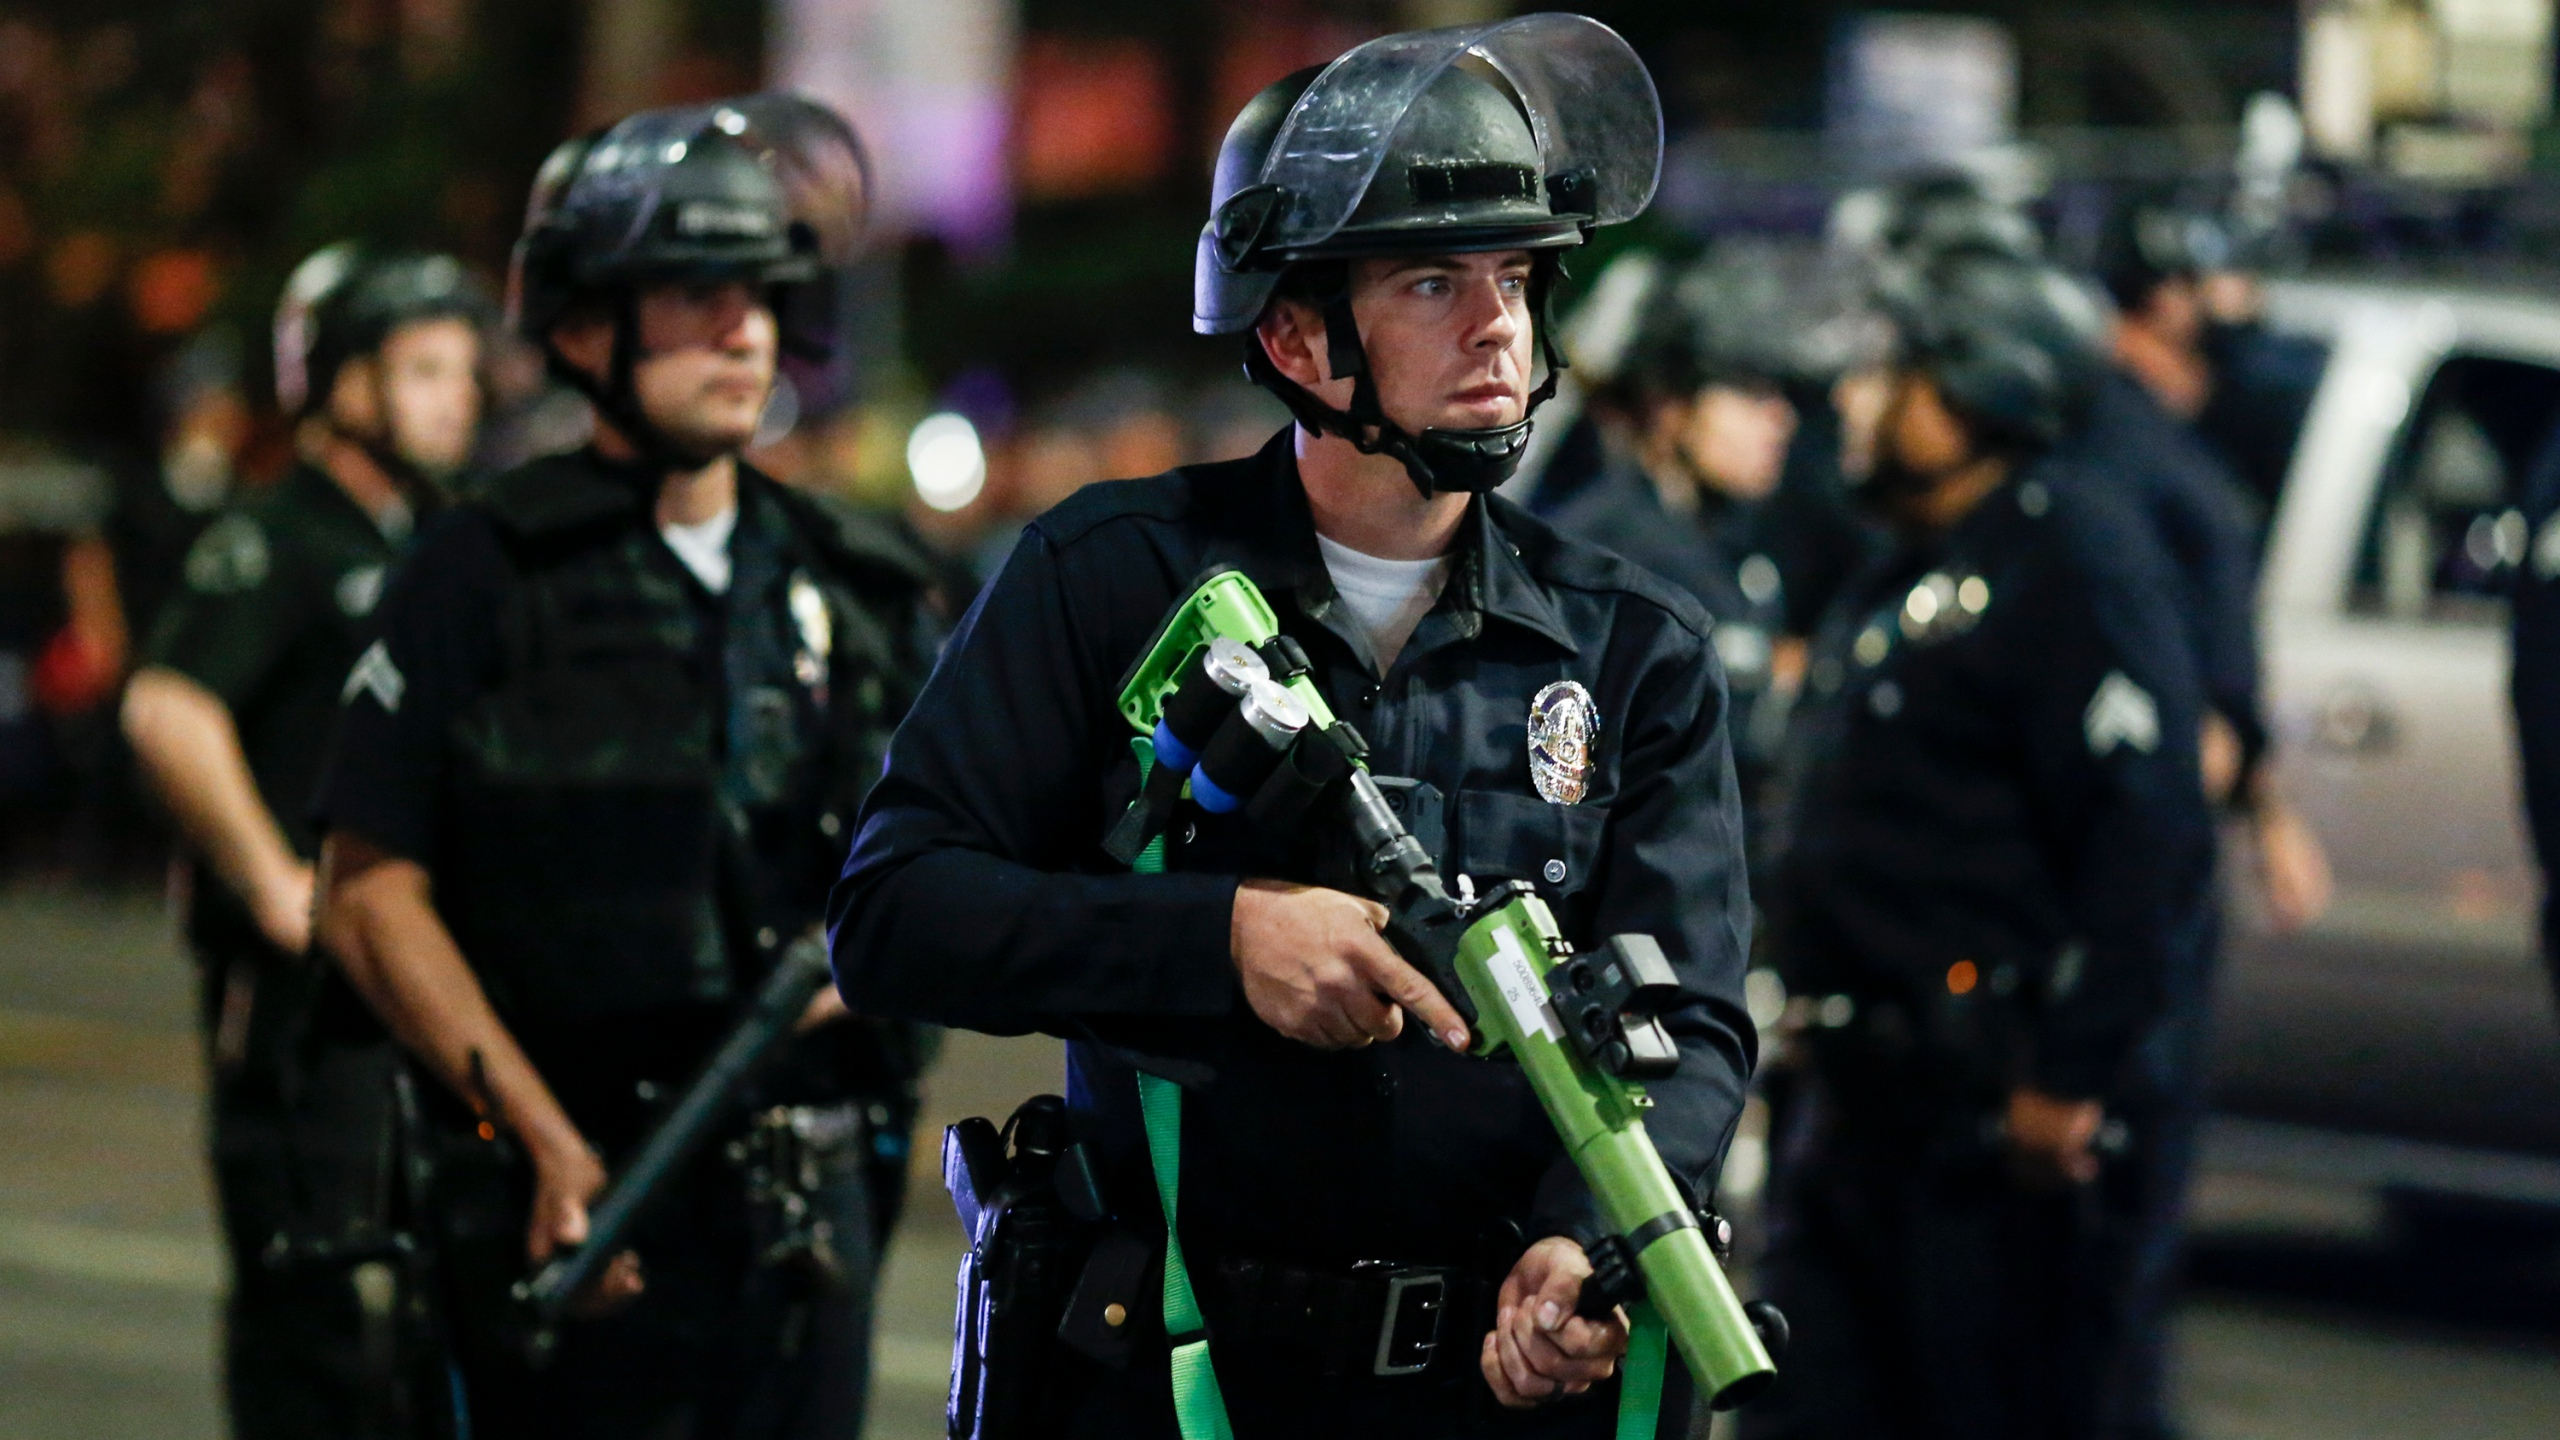 Police officers stand guard as they clear the streets during a protest in Los Angeles following the presidential election on Nov. 4, 2020. (Ringo H.W. Chiu / Associated Press)